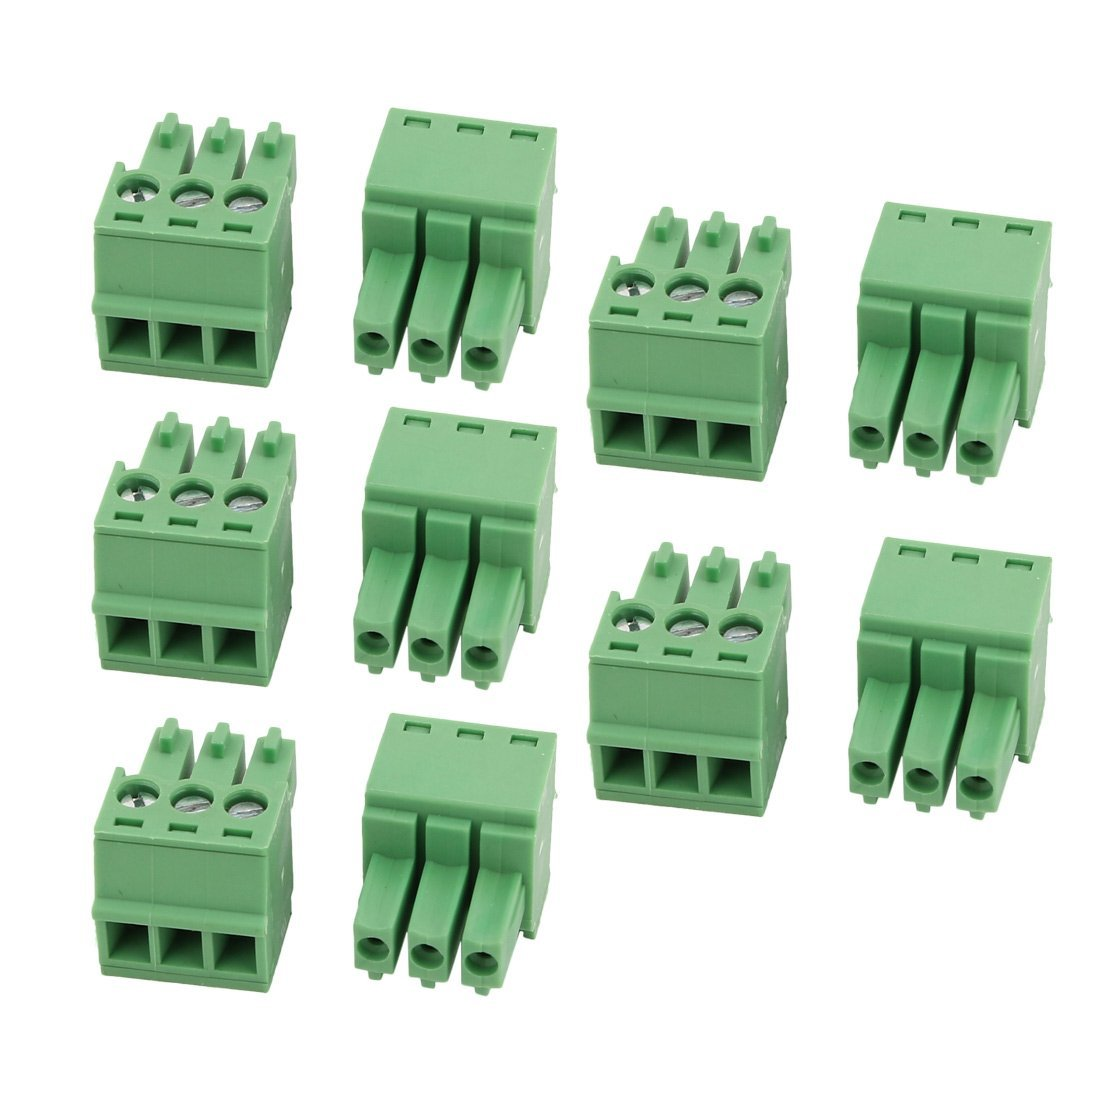 uxcell 10Pcs LC1 AC300V 8A 3.5mm Pitch 3P PCB Terminal Block Wire Connection